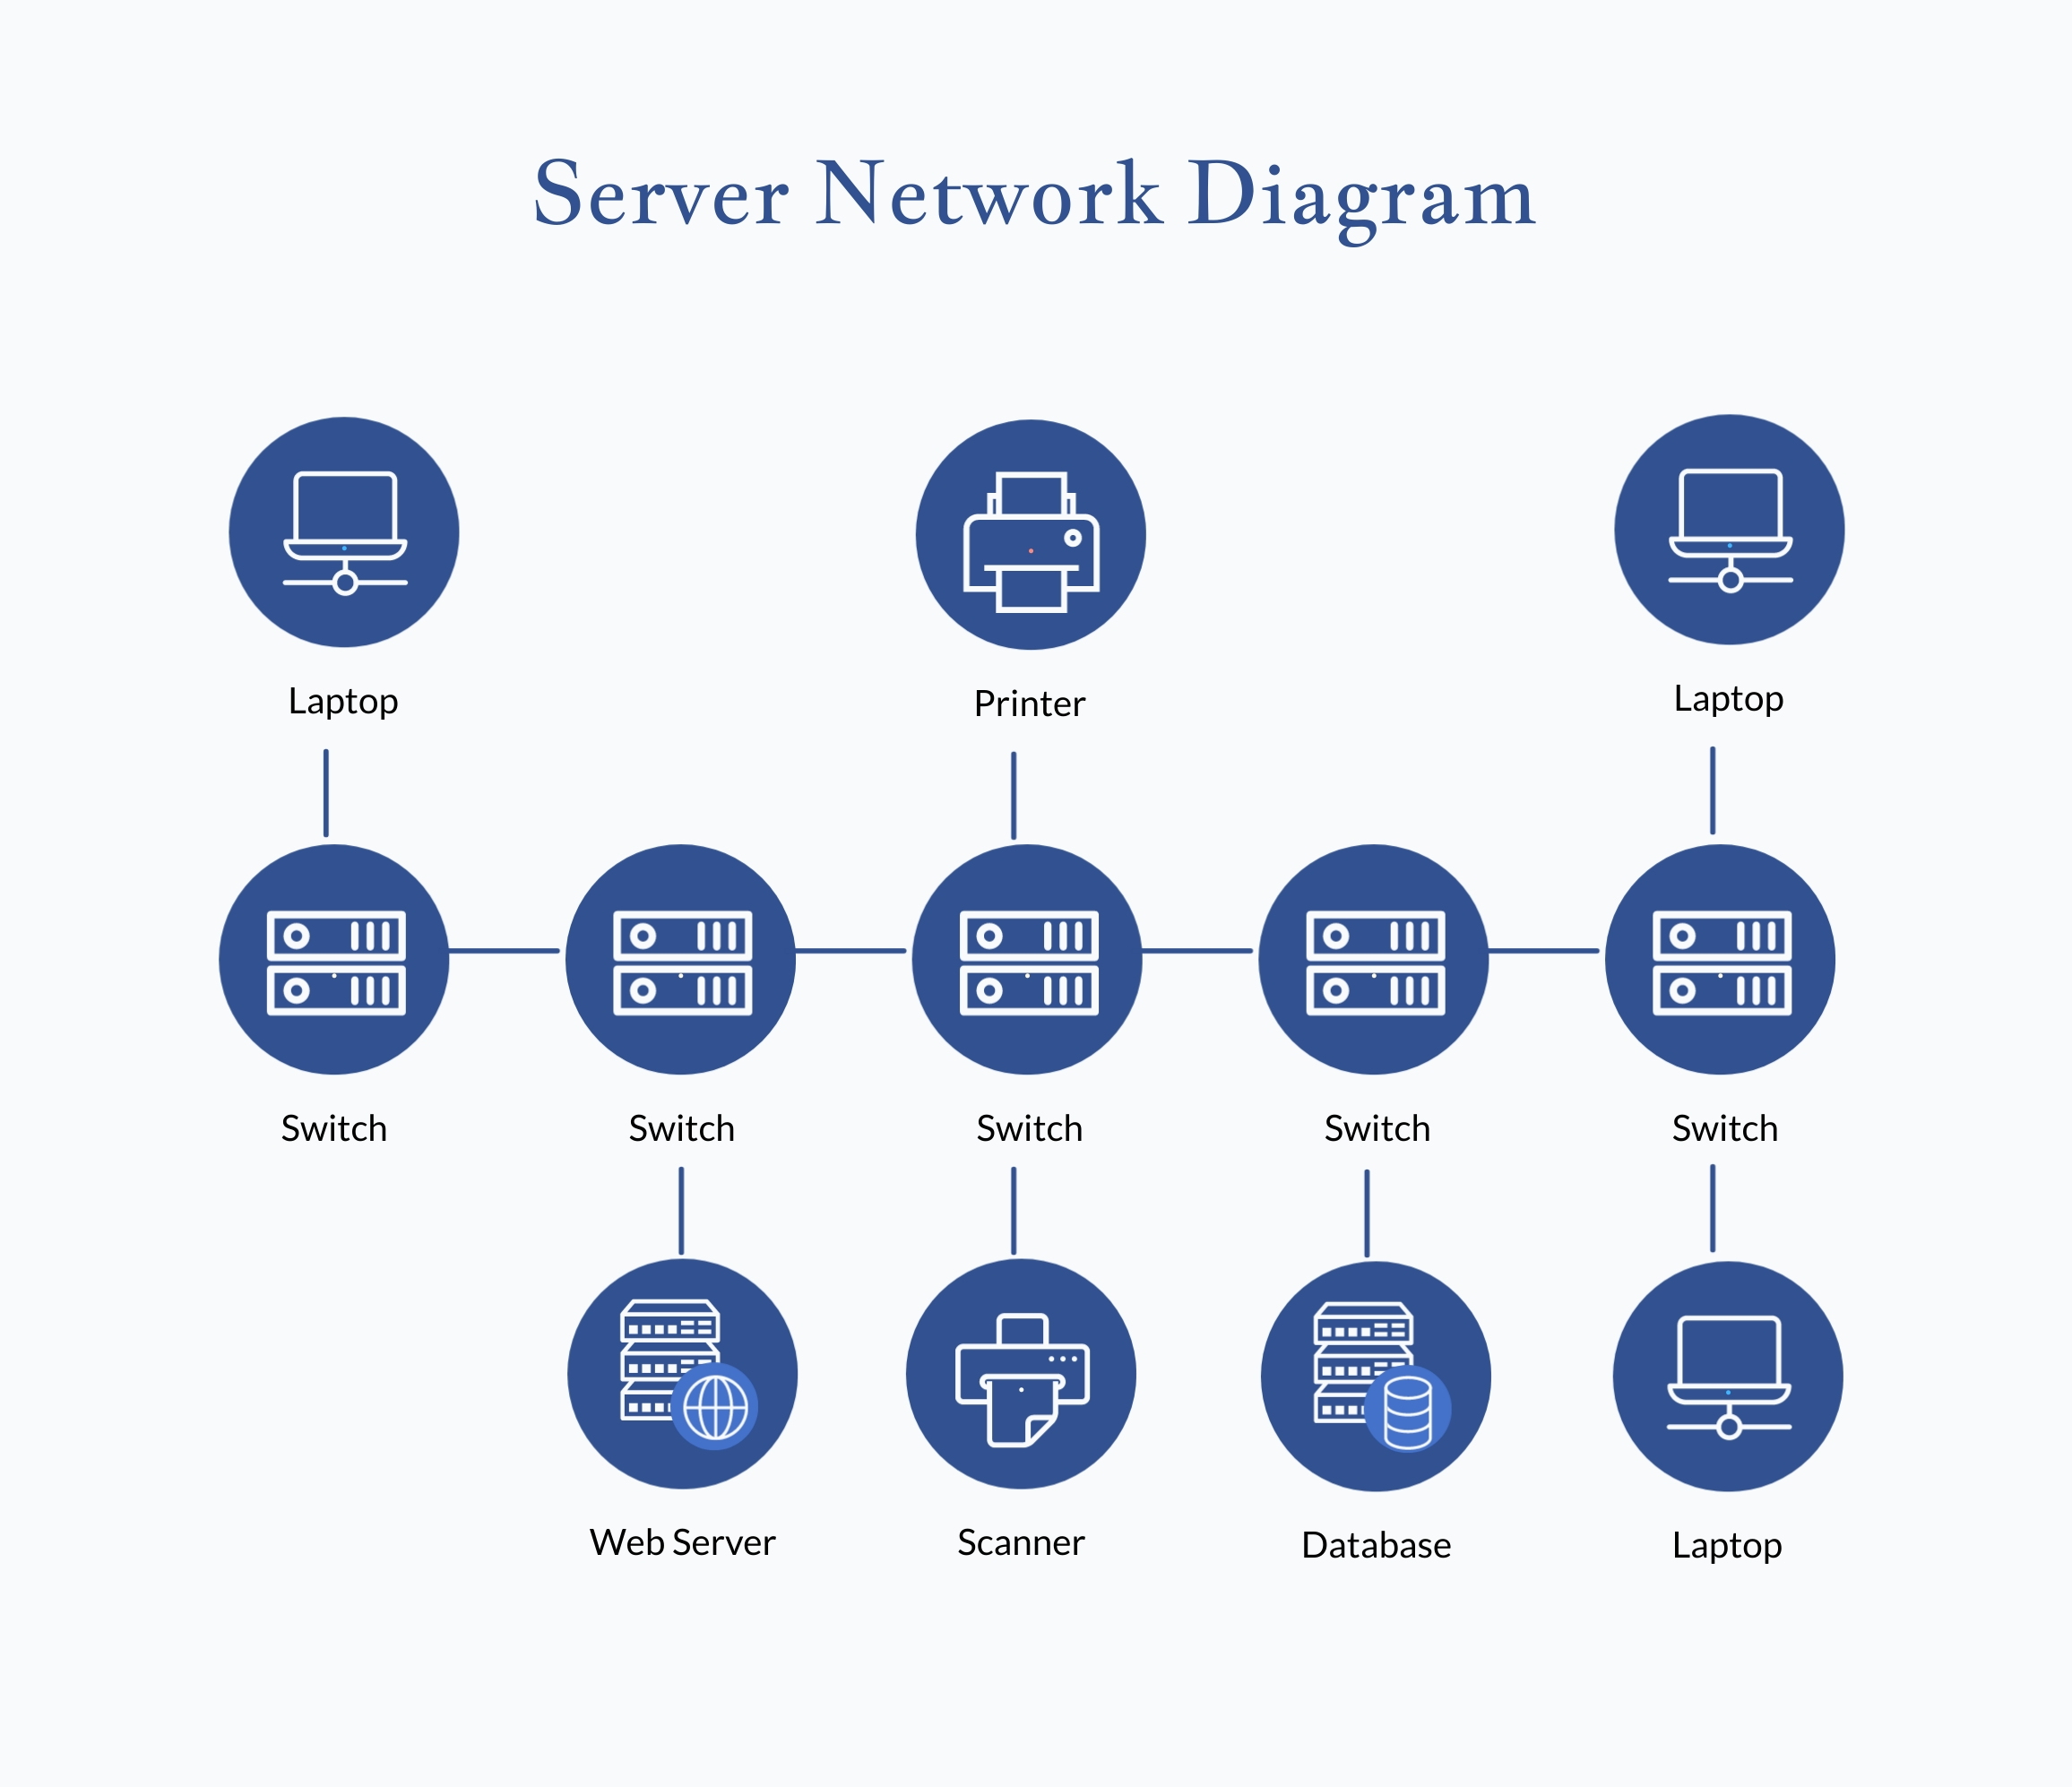 A server network diagram available in Visme.